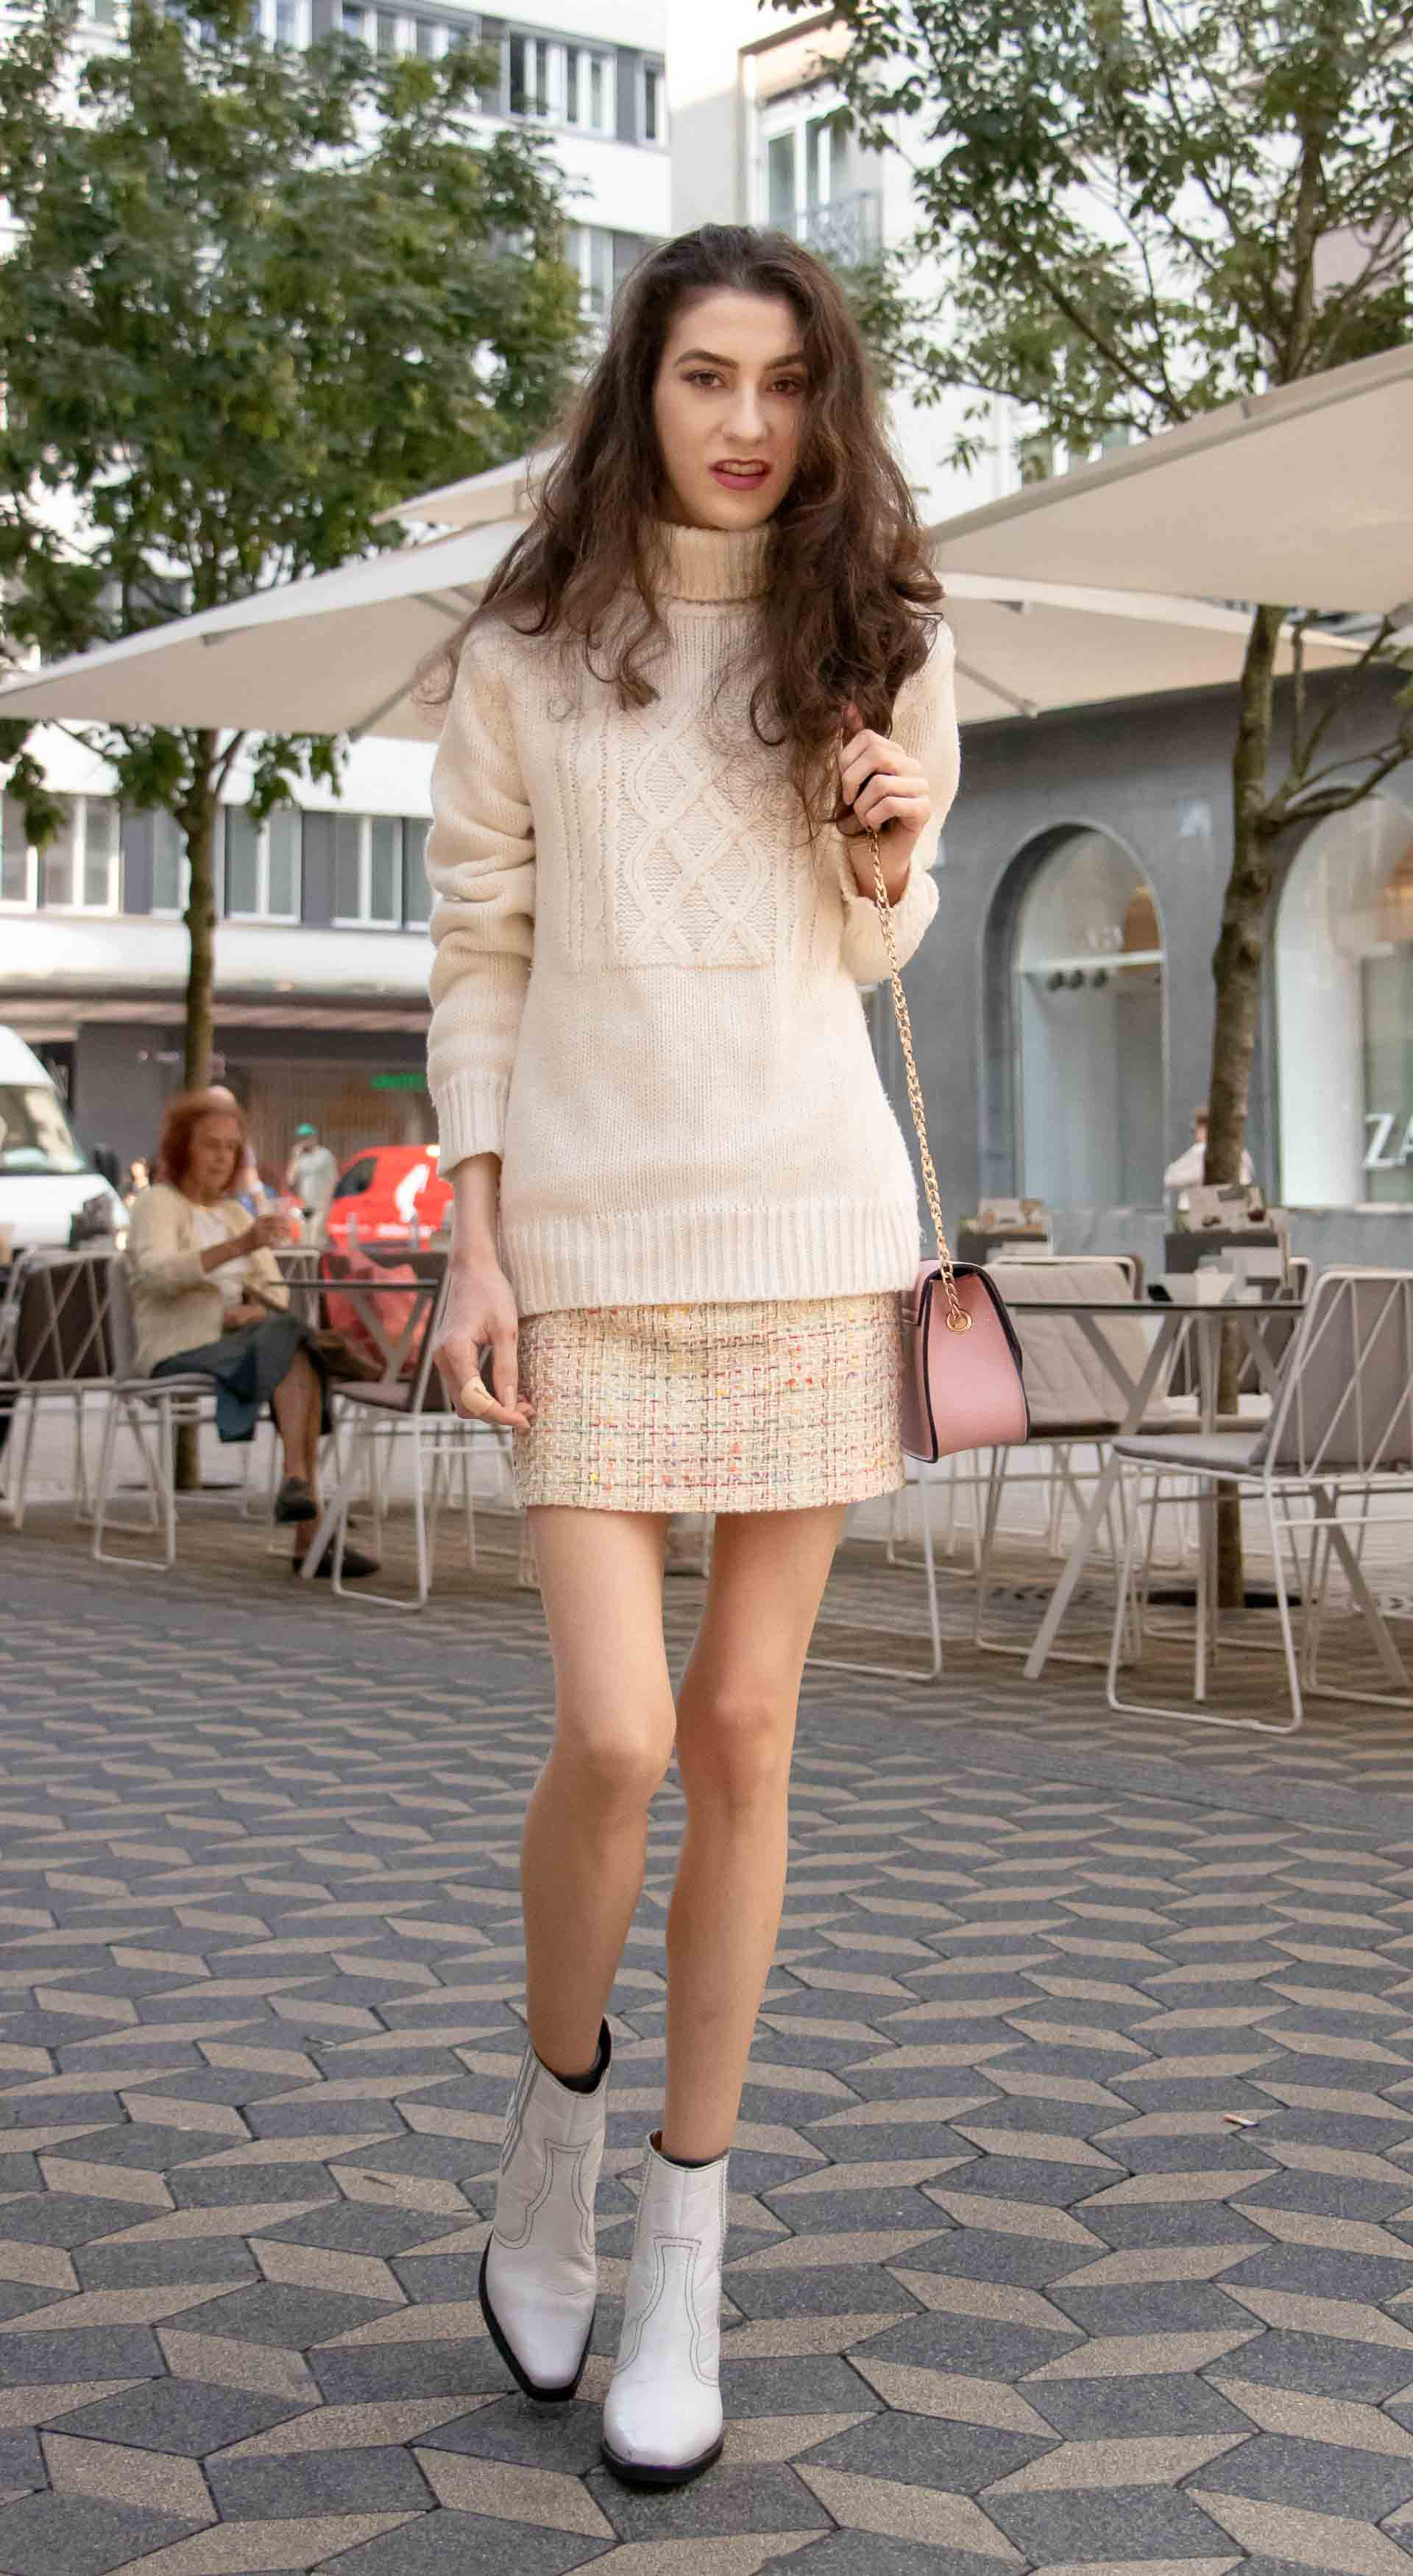 Beautiful Slovenian Fashion Blogger Veronika Lipar of Brunette from Wall dressed in white Ganni Western boots, yellow tweed skirt, white turtleneck sweater, chain strap shoulder bag for fall brunch